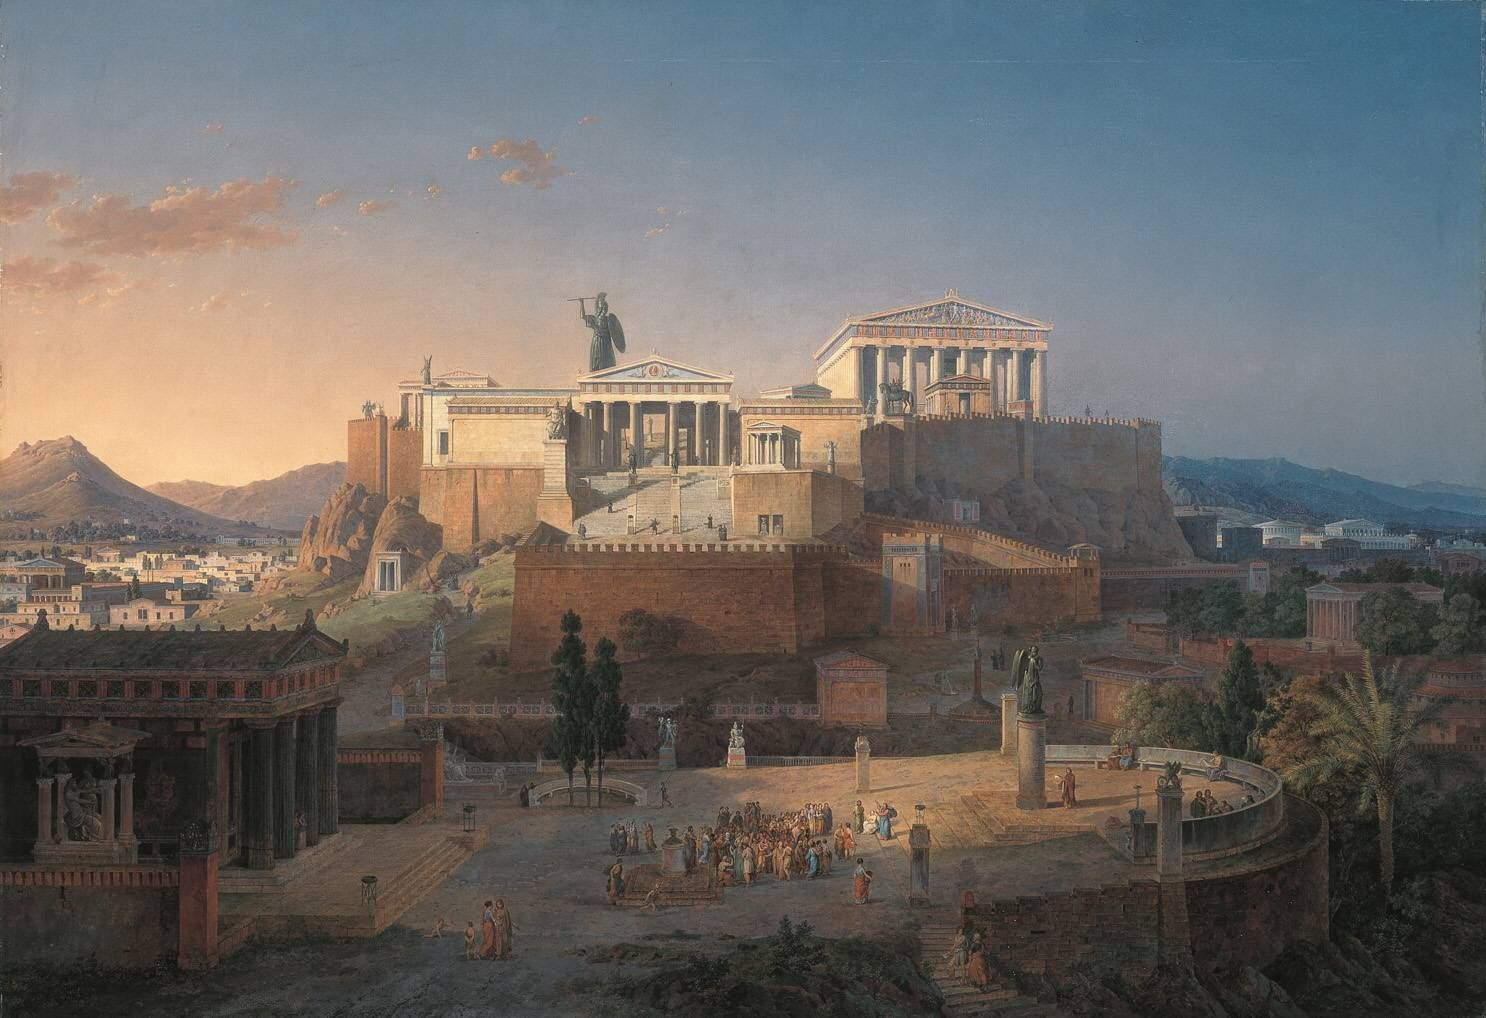 Leo von Klenze: Reconstruction of the Acropolis and Areopagus in Athens. 1846